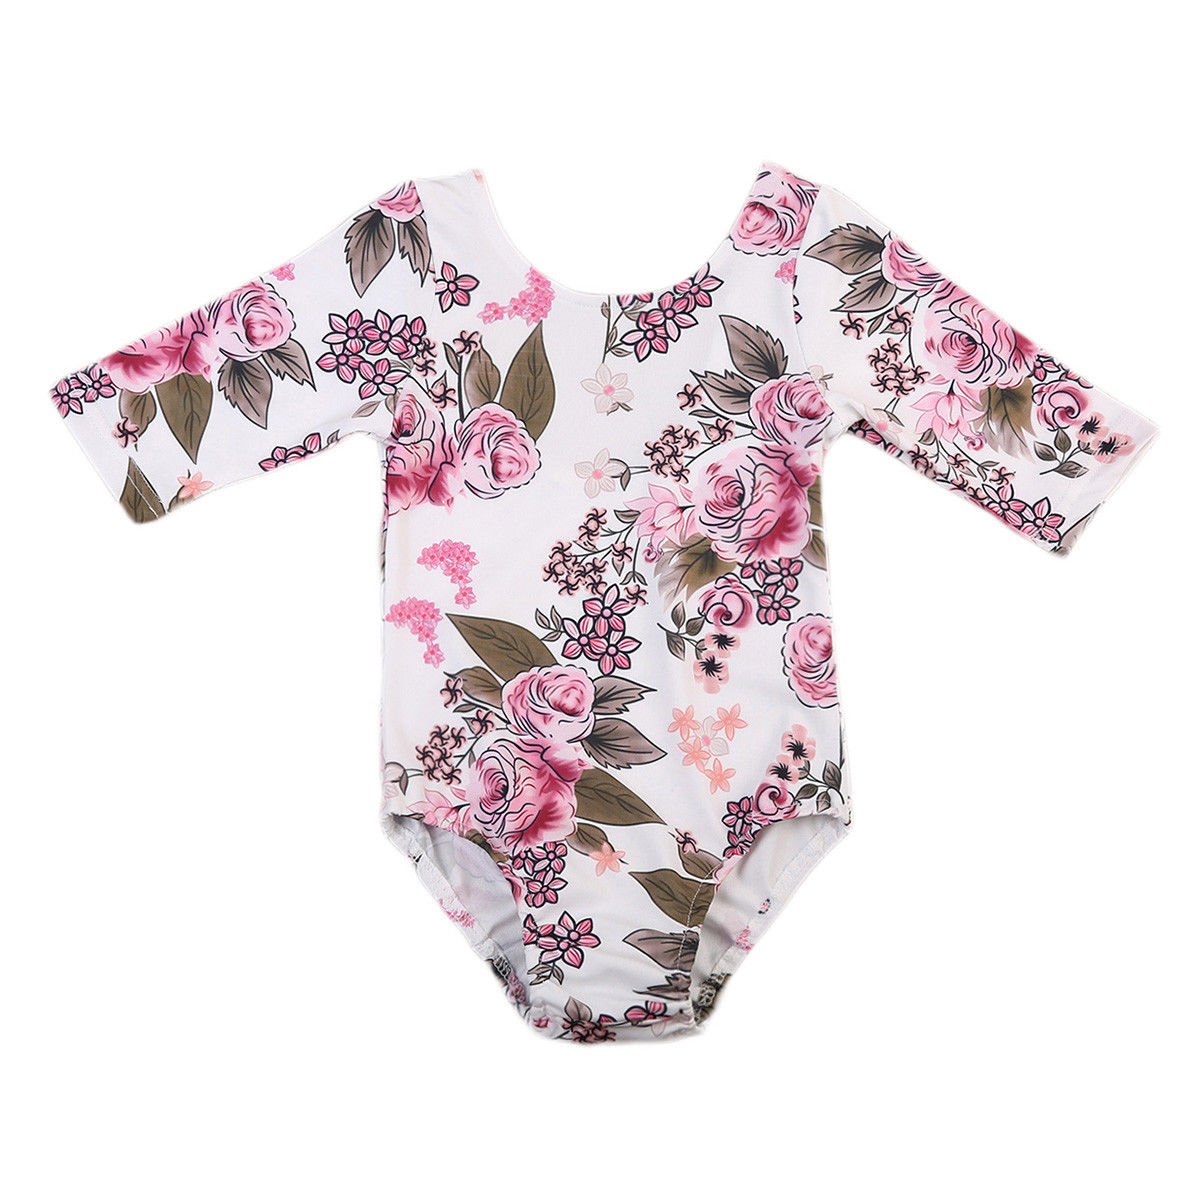 Infant Baby Girls Toddler Long Sleeve Romper Jumpsuit Clothes Outfits Top Newborn Girl Long Sleeve Print Rompers Sunsuits 2pcs set newborn floral baby girl clothes 2017 summer sleeveless cotton ruffles romper baby bodysuit headband outfits sunsuit